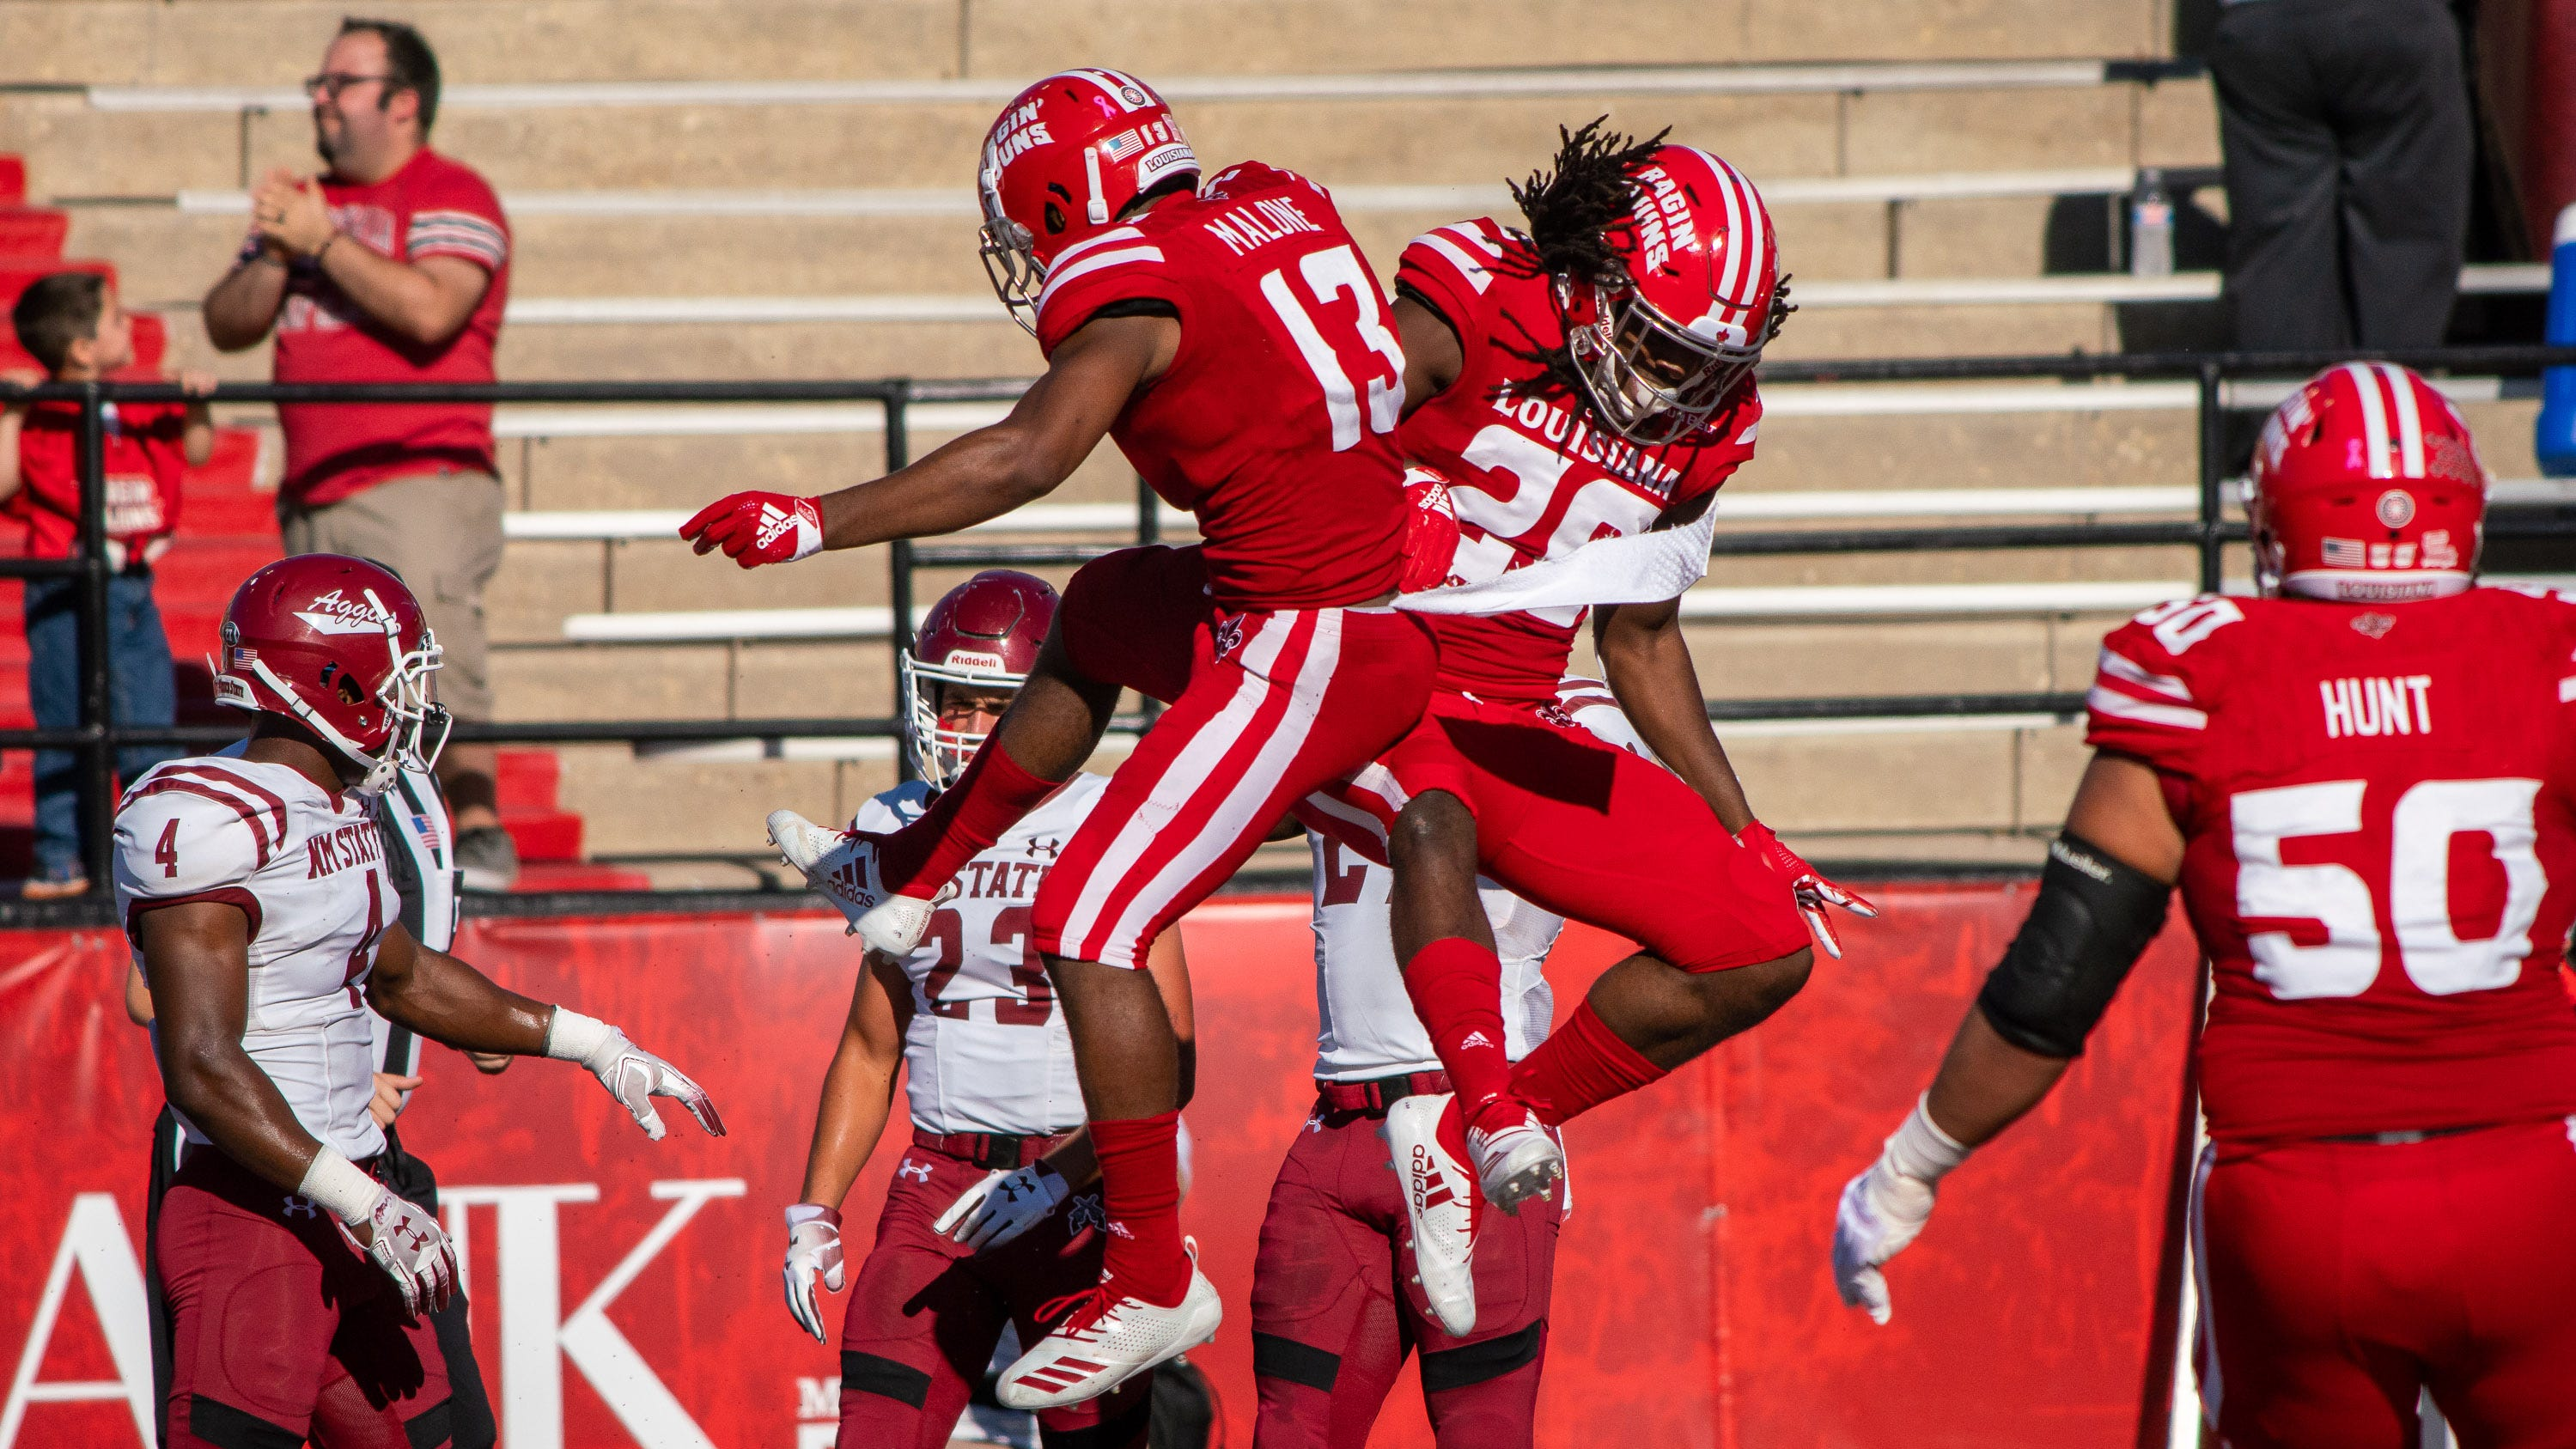 UL's Jarrod Jackson and Ryheem Malone celebrate after a touchdown as the Ragin' Cajuns play their Homecoming game against the New Mexico State Aggies at Cajun Field on Oct. 13, 2018.